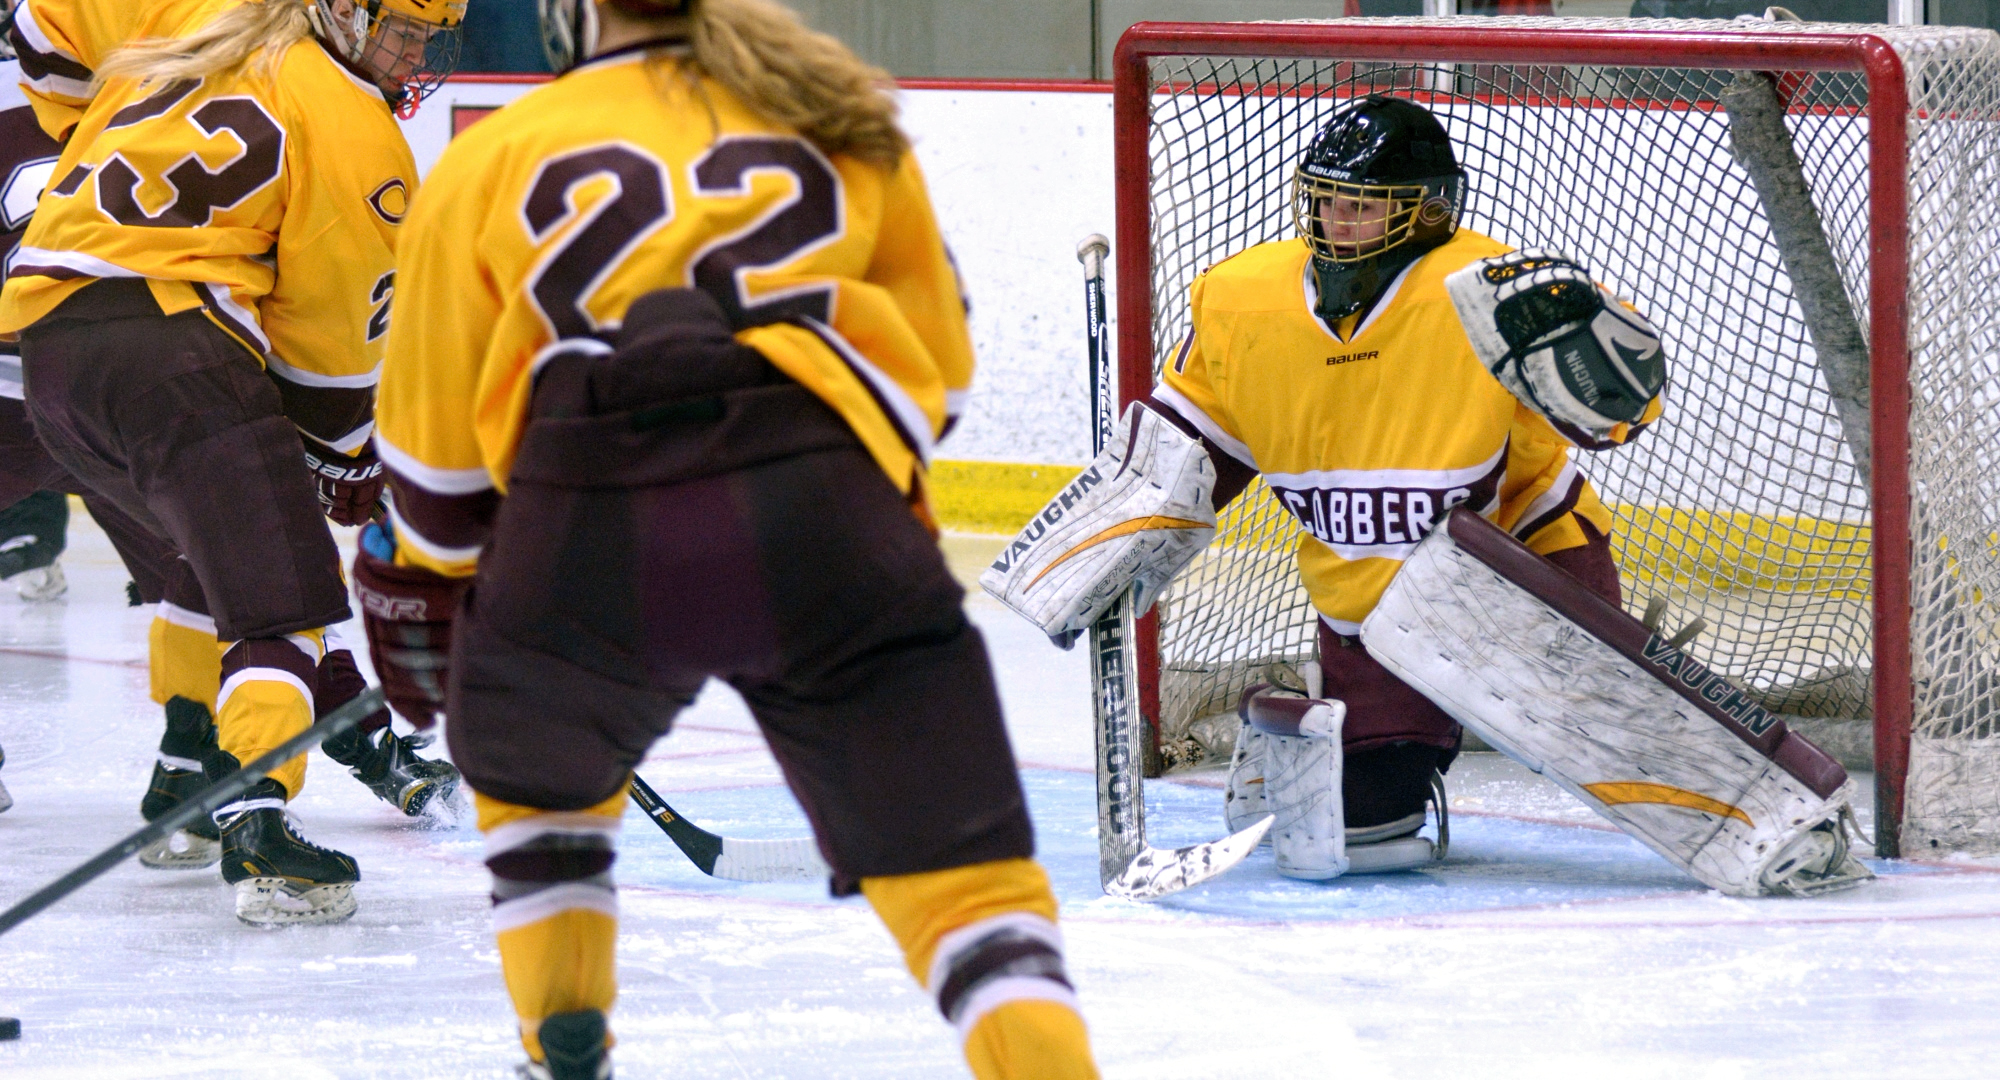 Senior goalie Andrea Klug turned aside 34 of the 36 shots she faced to help Concordia earn a 2-2 OT tie at Gustavus.